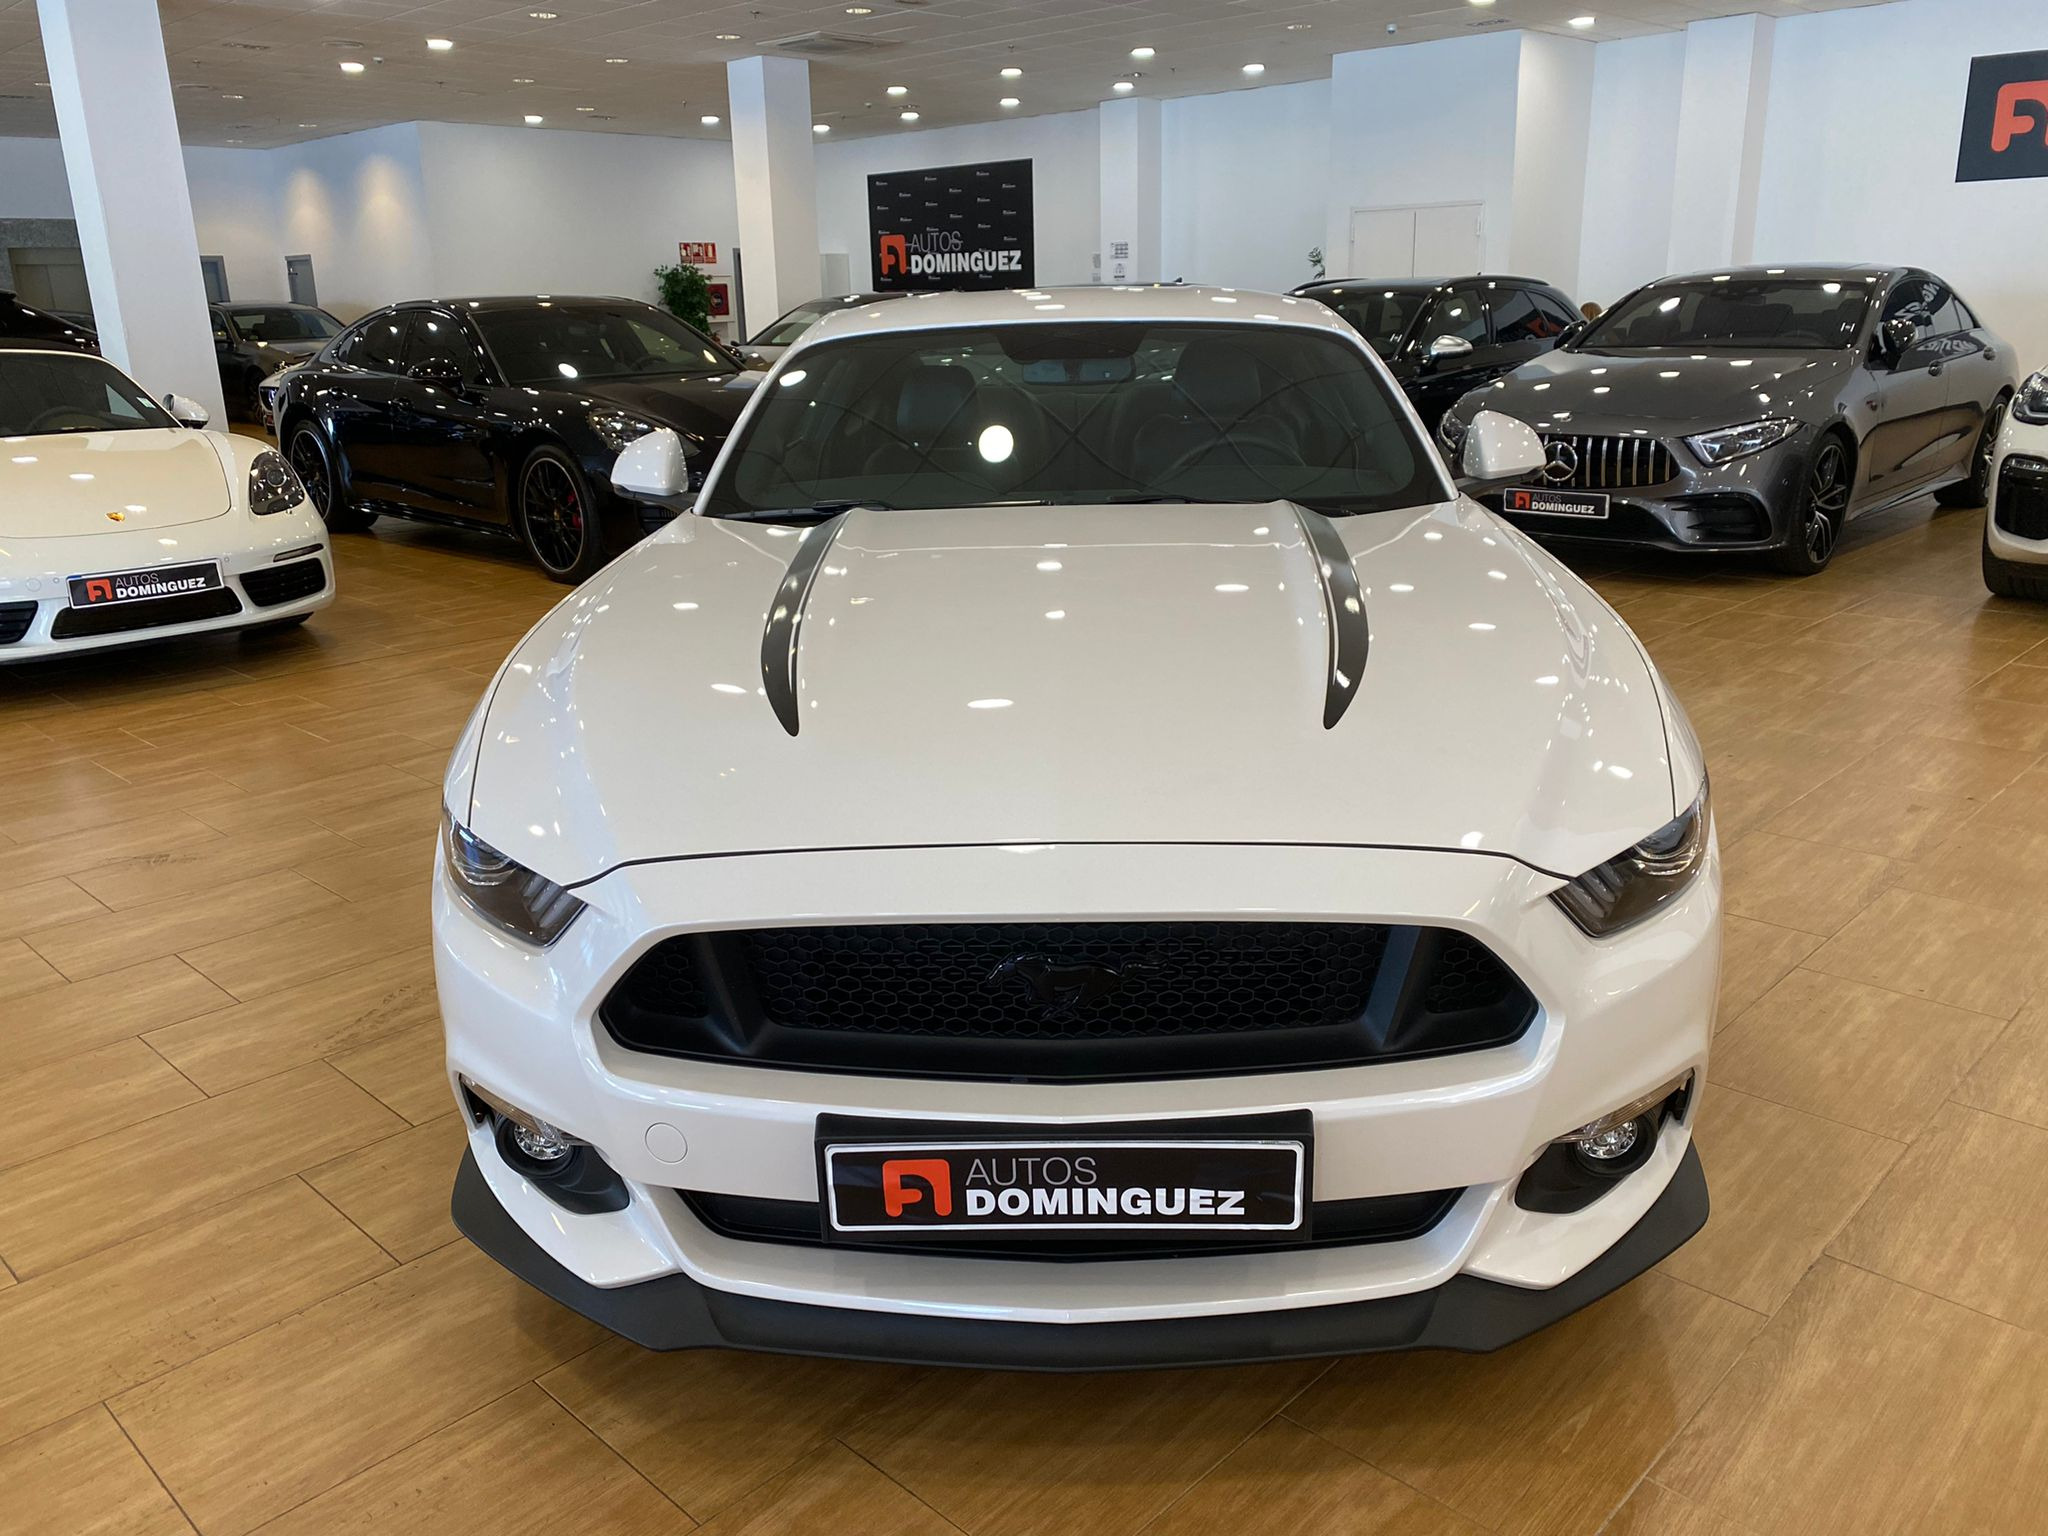 FORD Mustang 5.0 TiVCT V8 307kW Mustang GT A.Fast. 2p.